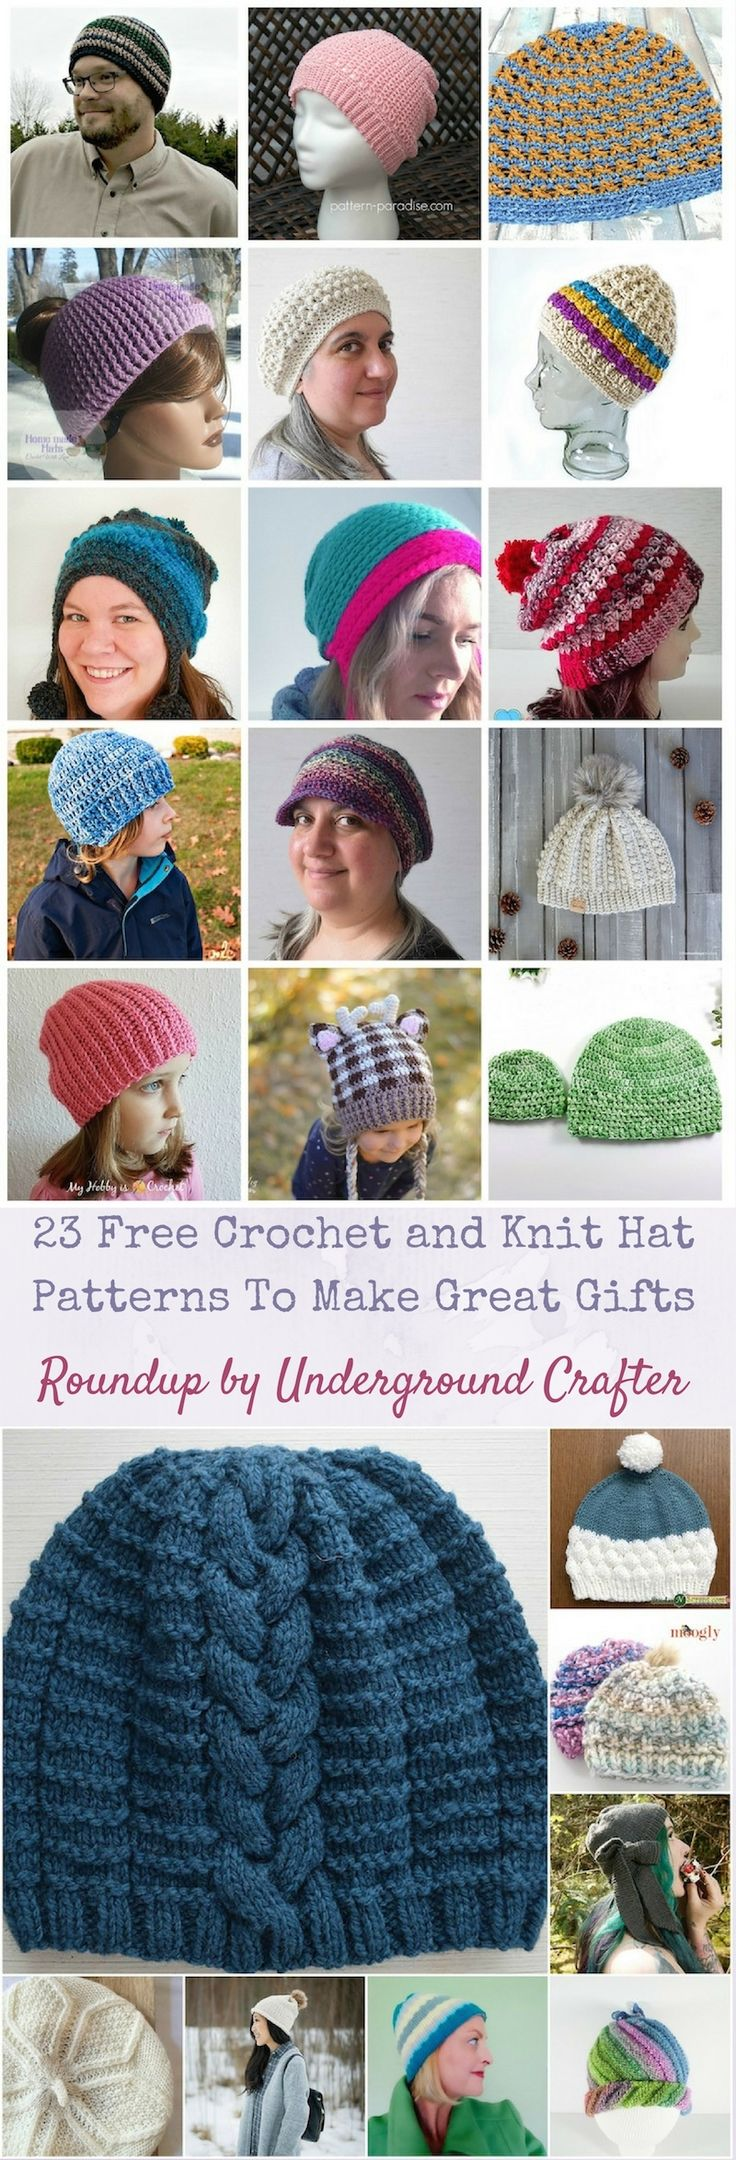 Roundup: 23 Free Crochet and Knit Hat Patterns To Make Great Gifts via Underground Crafter | Find your next project in this roundup featuring berets, slouchy hats, beanies, earflap hats, and more! #crochet #knitting